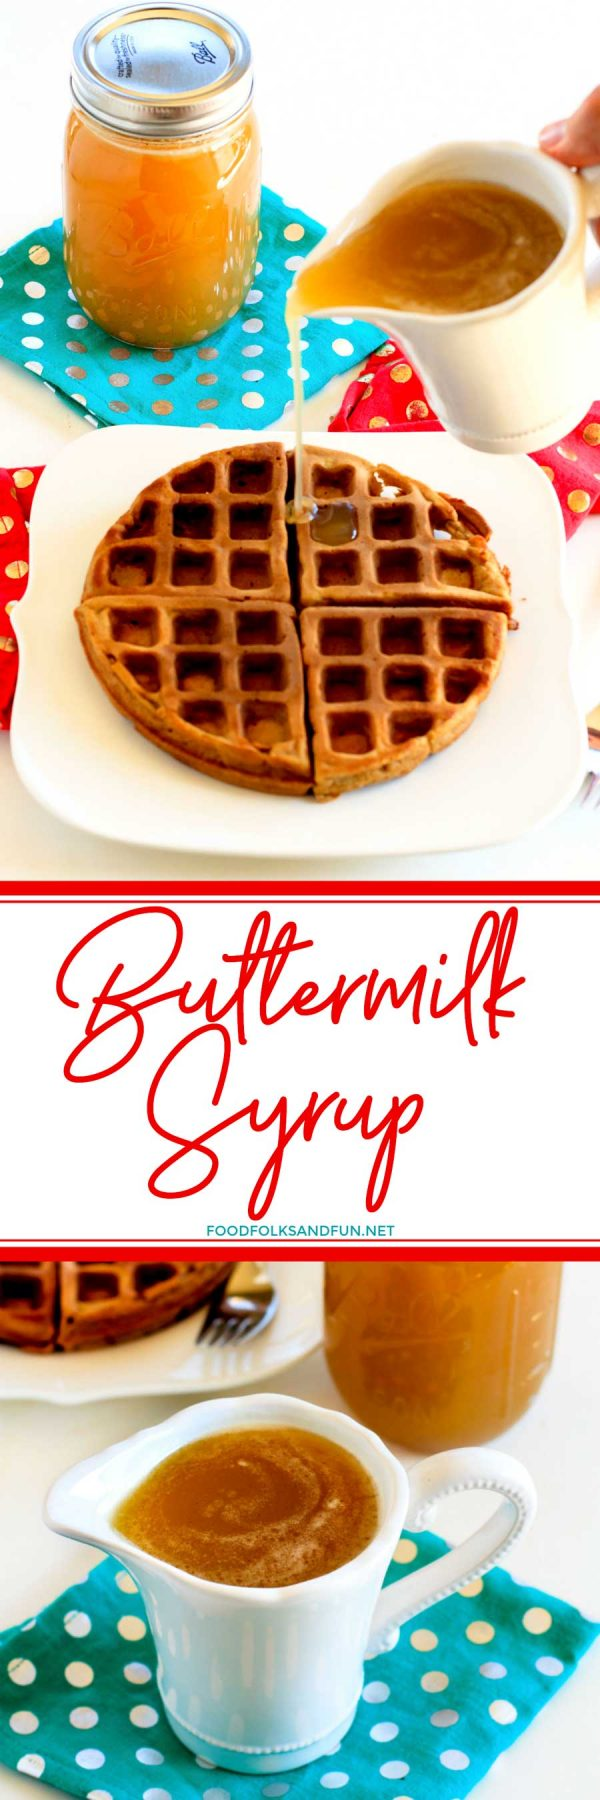 The easiest Homemade Buttermilk Syrup recipe!